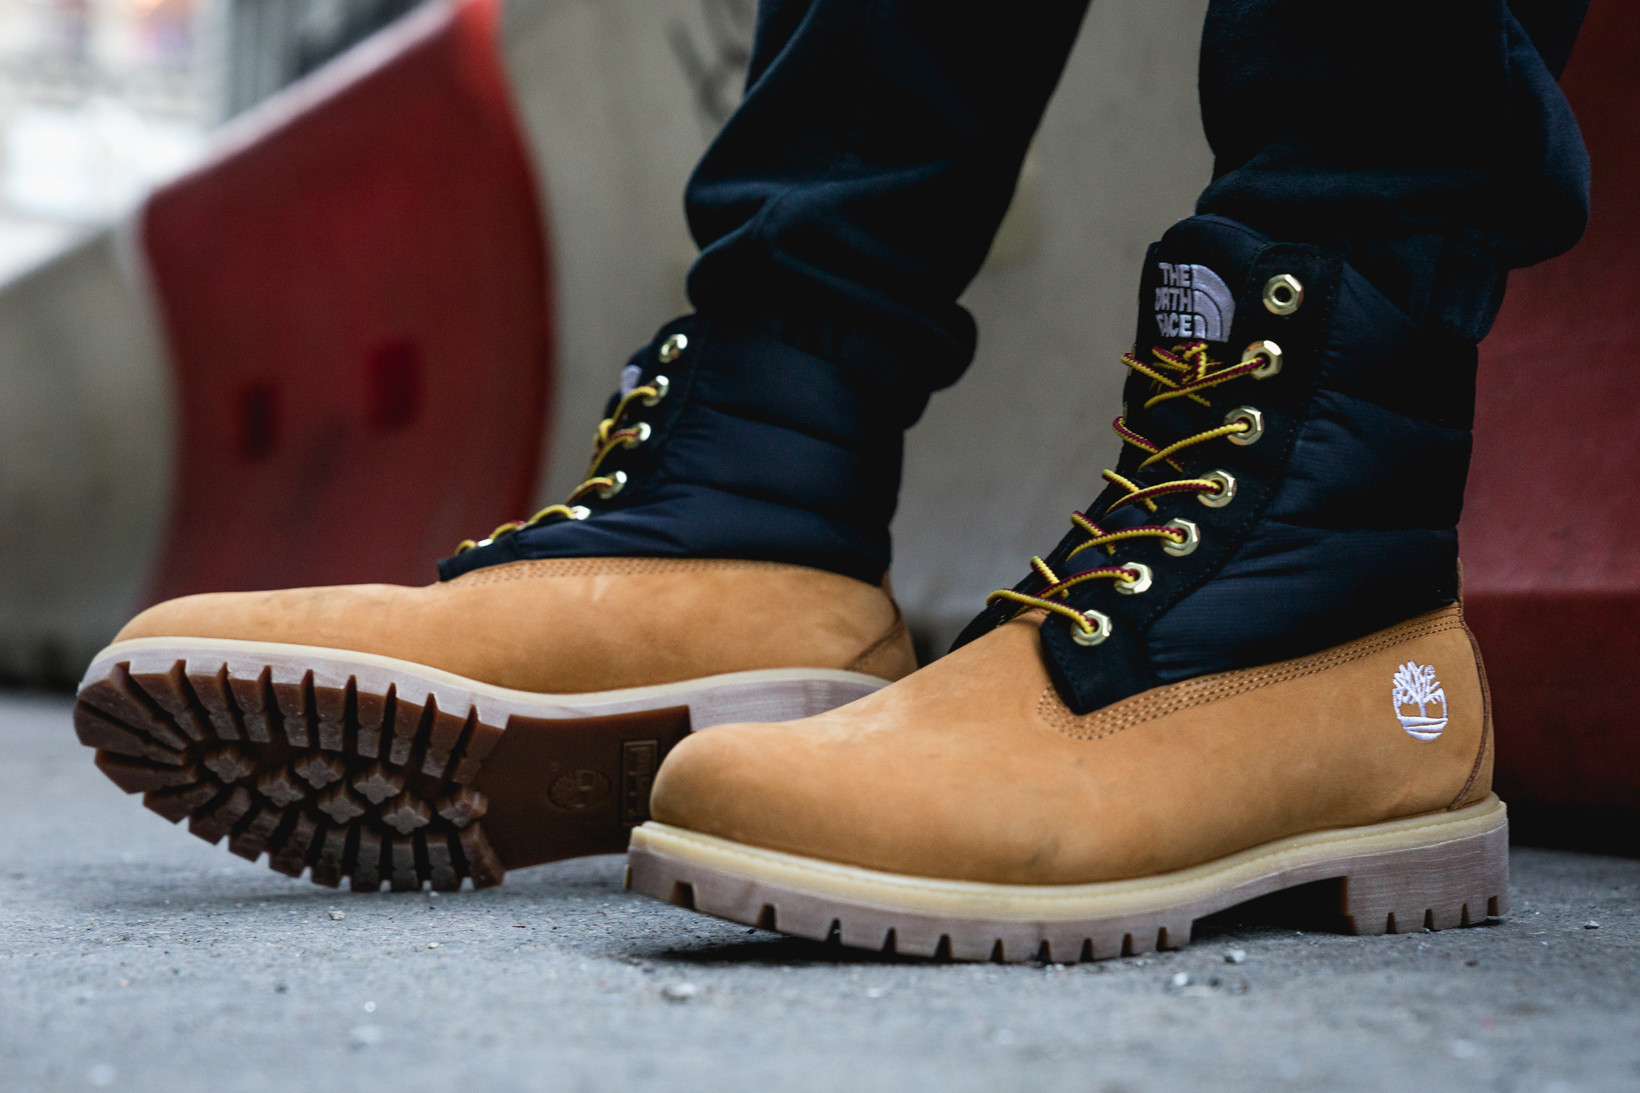 The North Face Timberland 2017 Fall